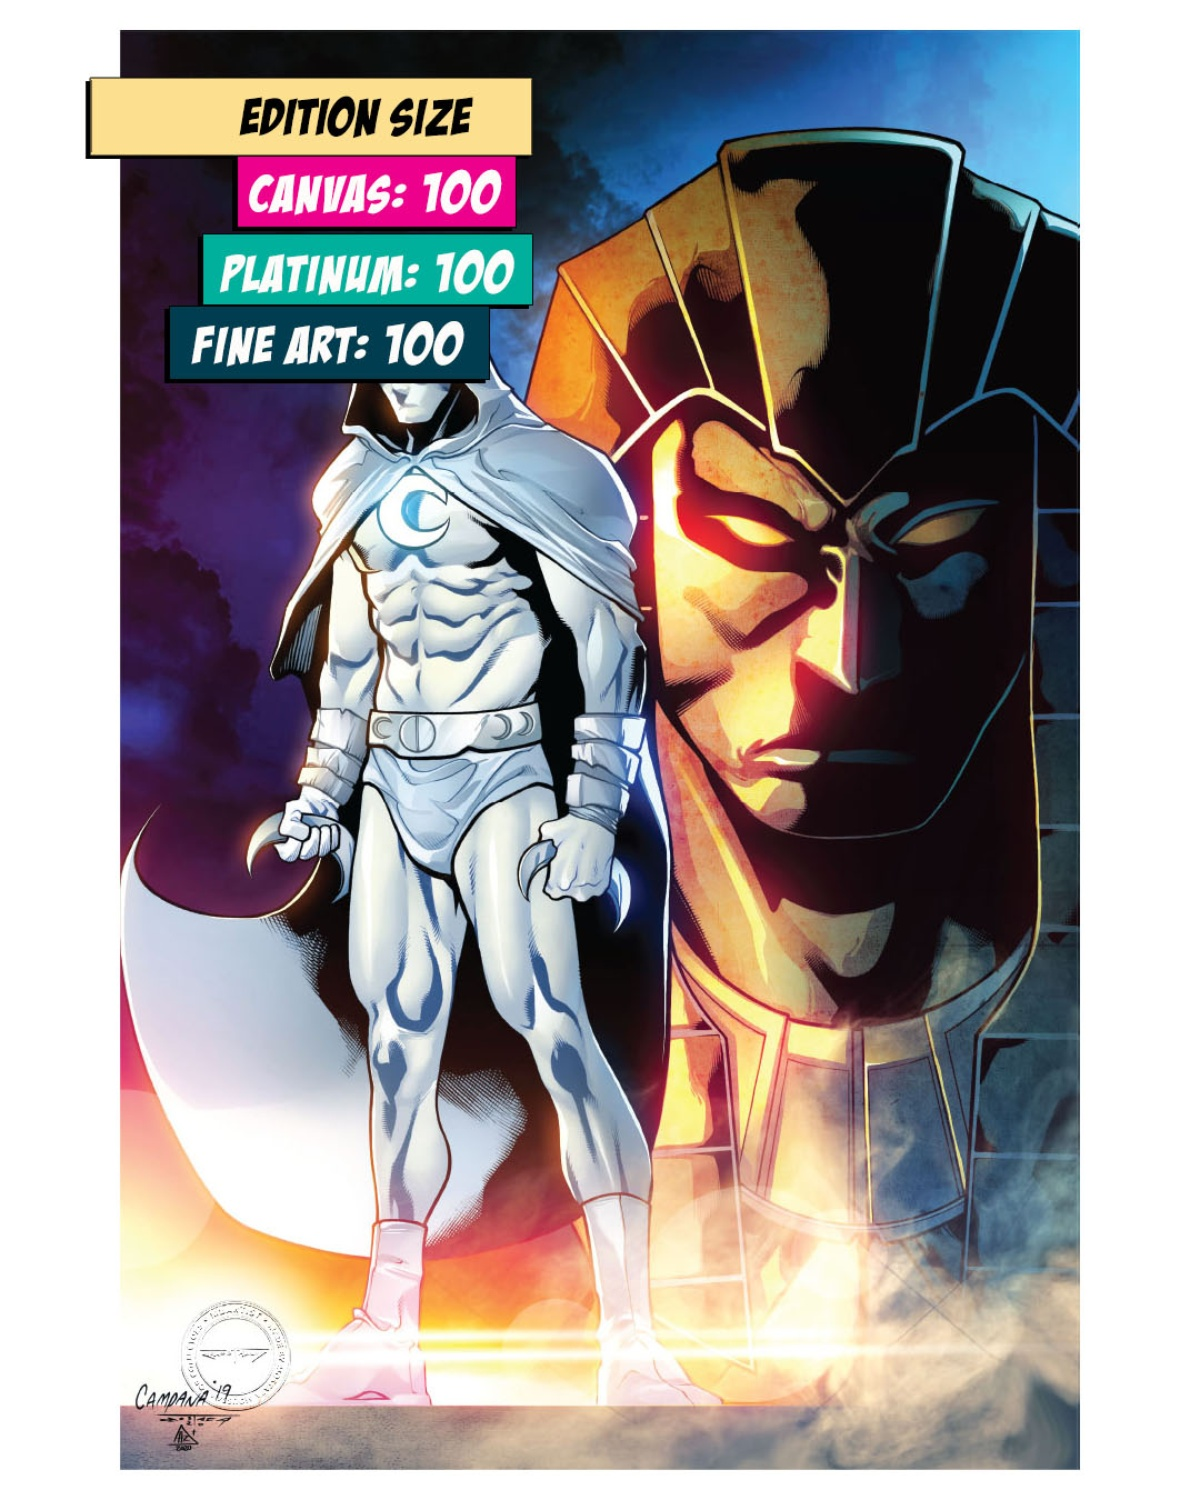 MOON KNIGHT: THE FIST OF KHONSHU